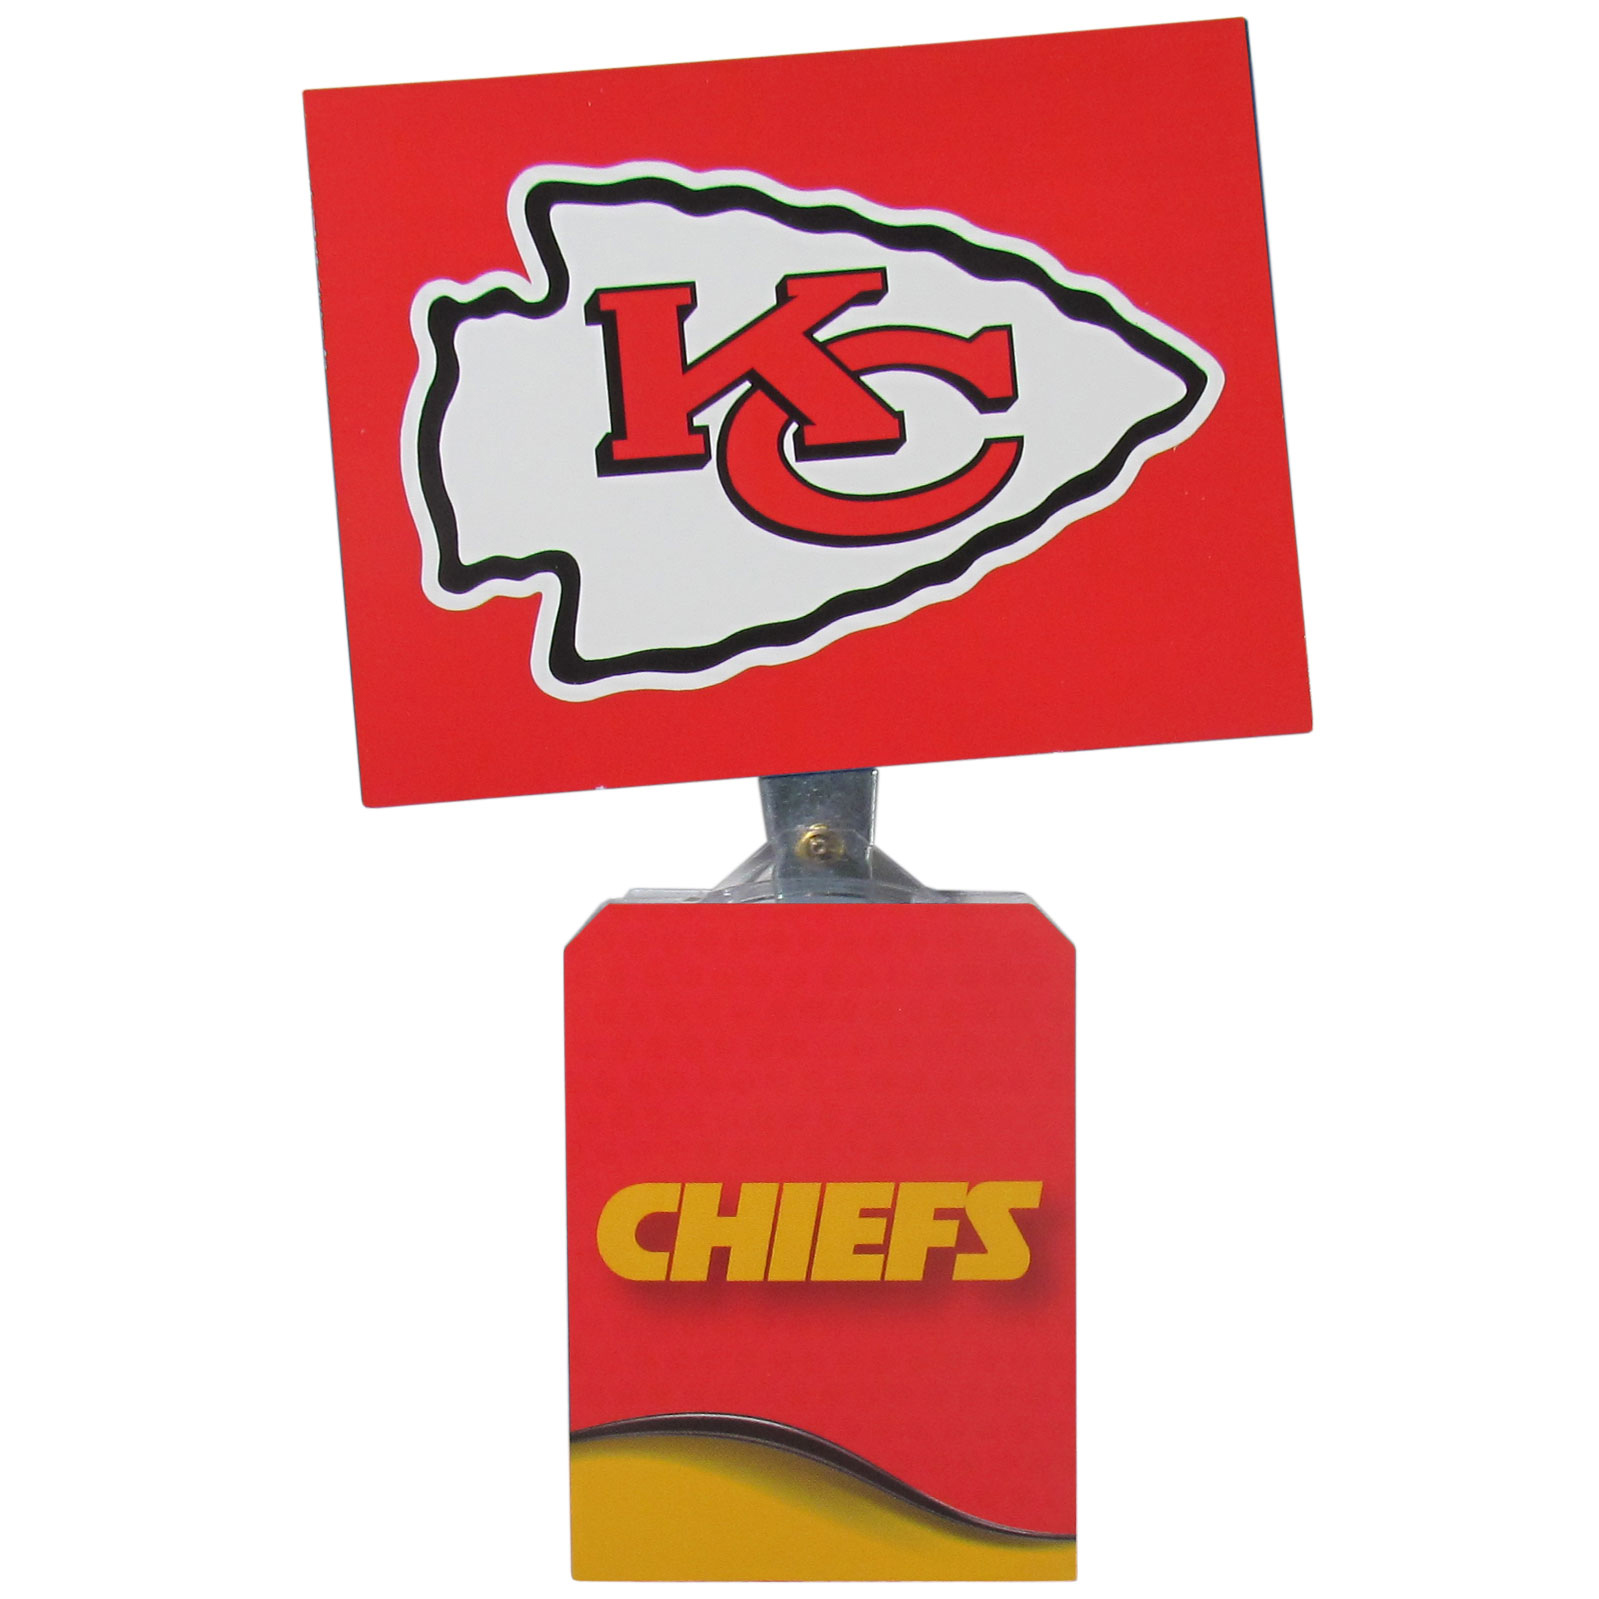 Kansas City Chiefs Solar Flags - Get pumped up on the way to game with Siskiyou's Chicago Bears Kansas City Chiefs Solar Flag that mounts to your dashboard or window. The in-motion solar flag also doubles as decoration for your tailgate or homegate! The base of the flag is 3 inches tall and the flag is 4 inches making the entire in-motion solar flag stand at 7 inches tall. Keep your spirit moving with your favorite team's Solar Flag.